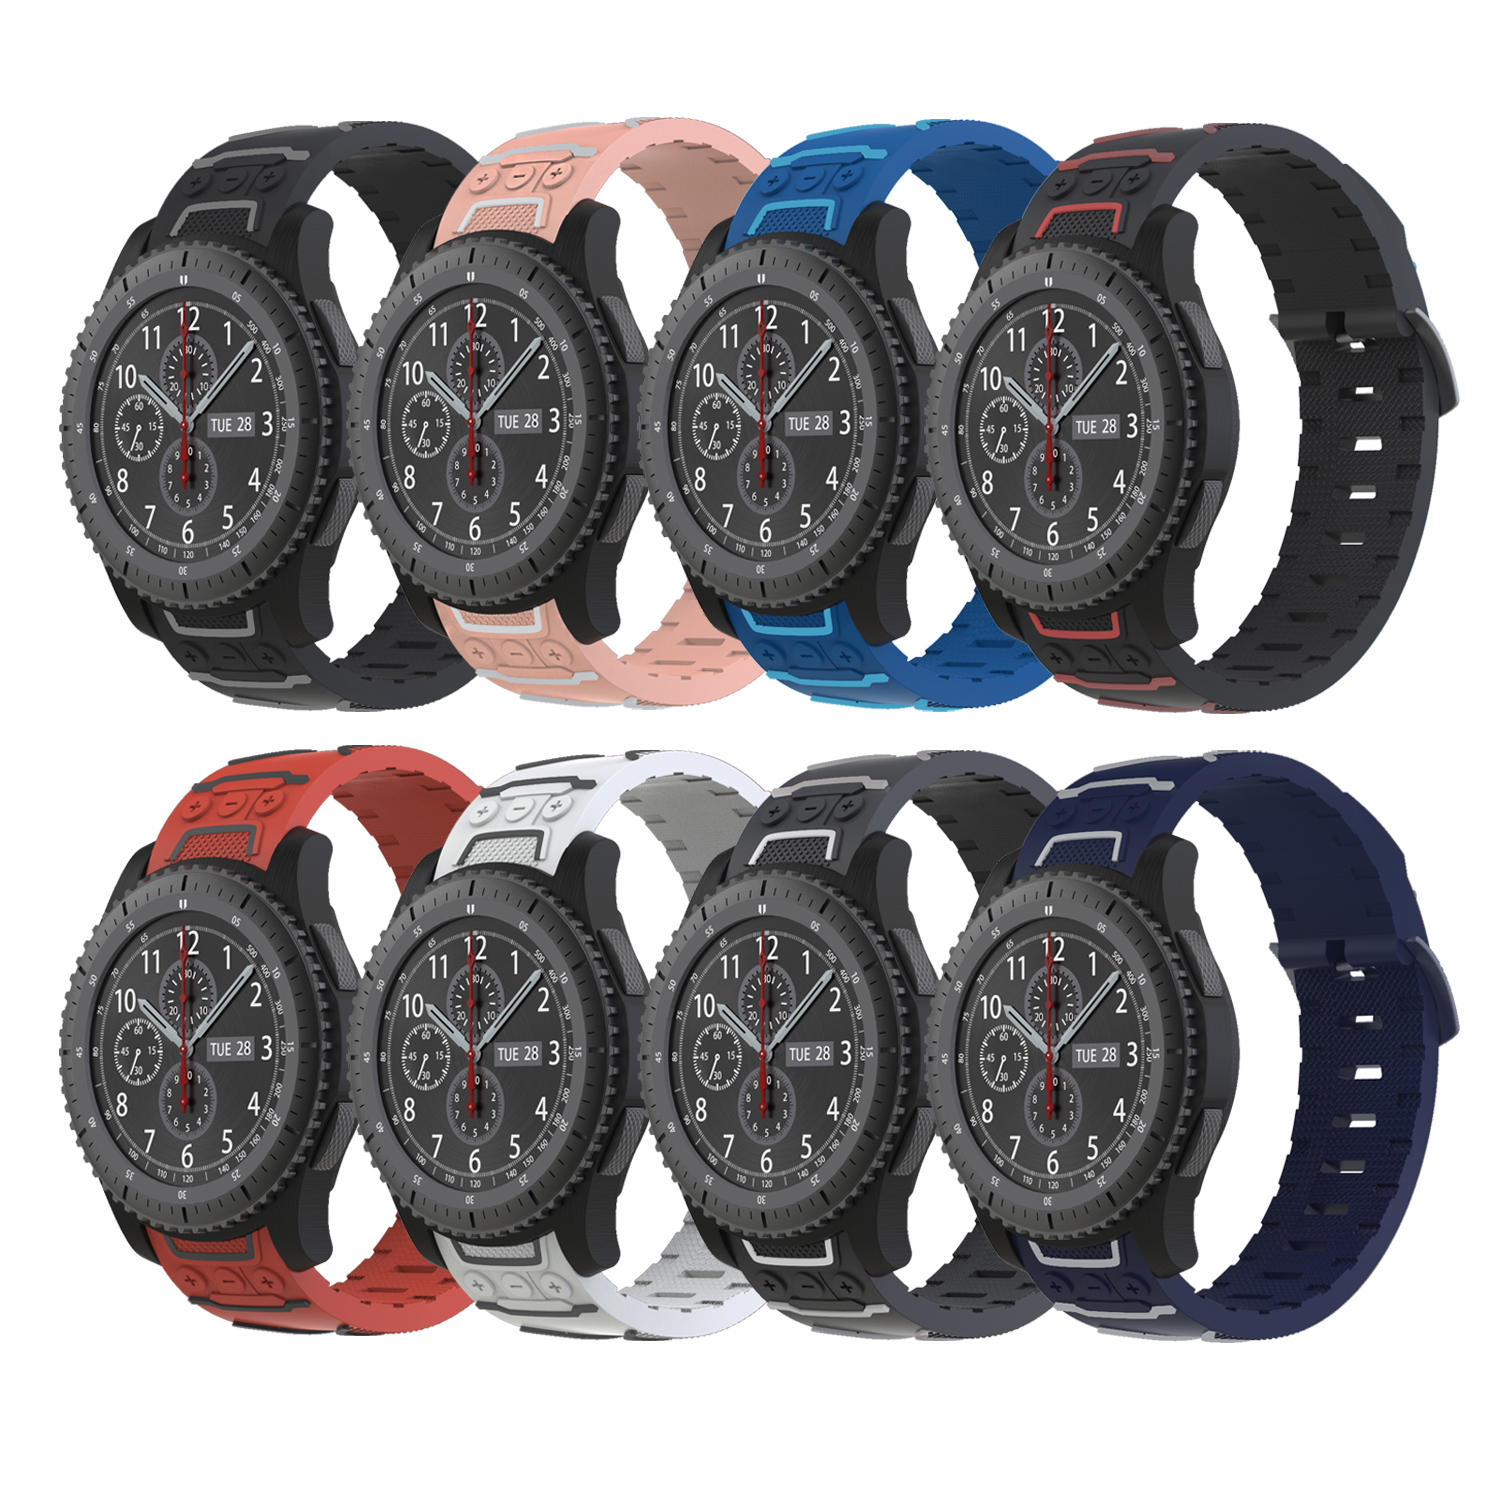 Bakeey 22mm Silicone Watch Band Soft Watch Strap for Samsung Gear S3 Frontier/Classic